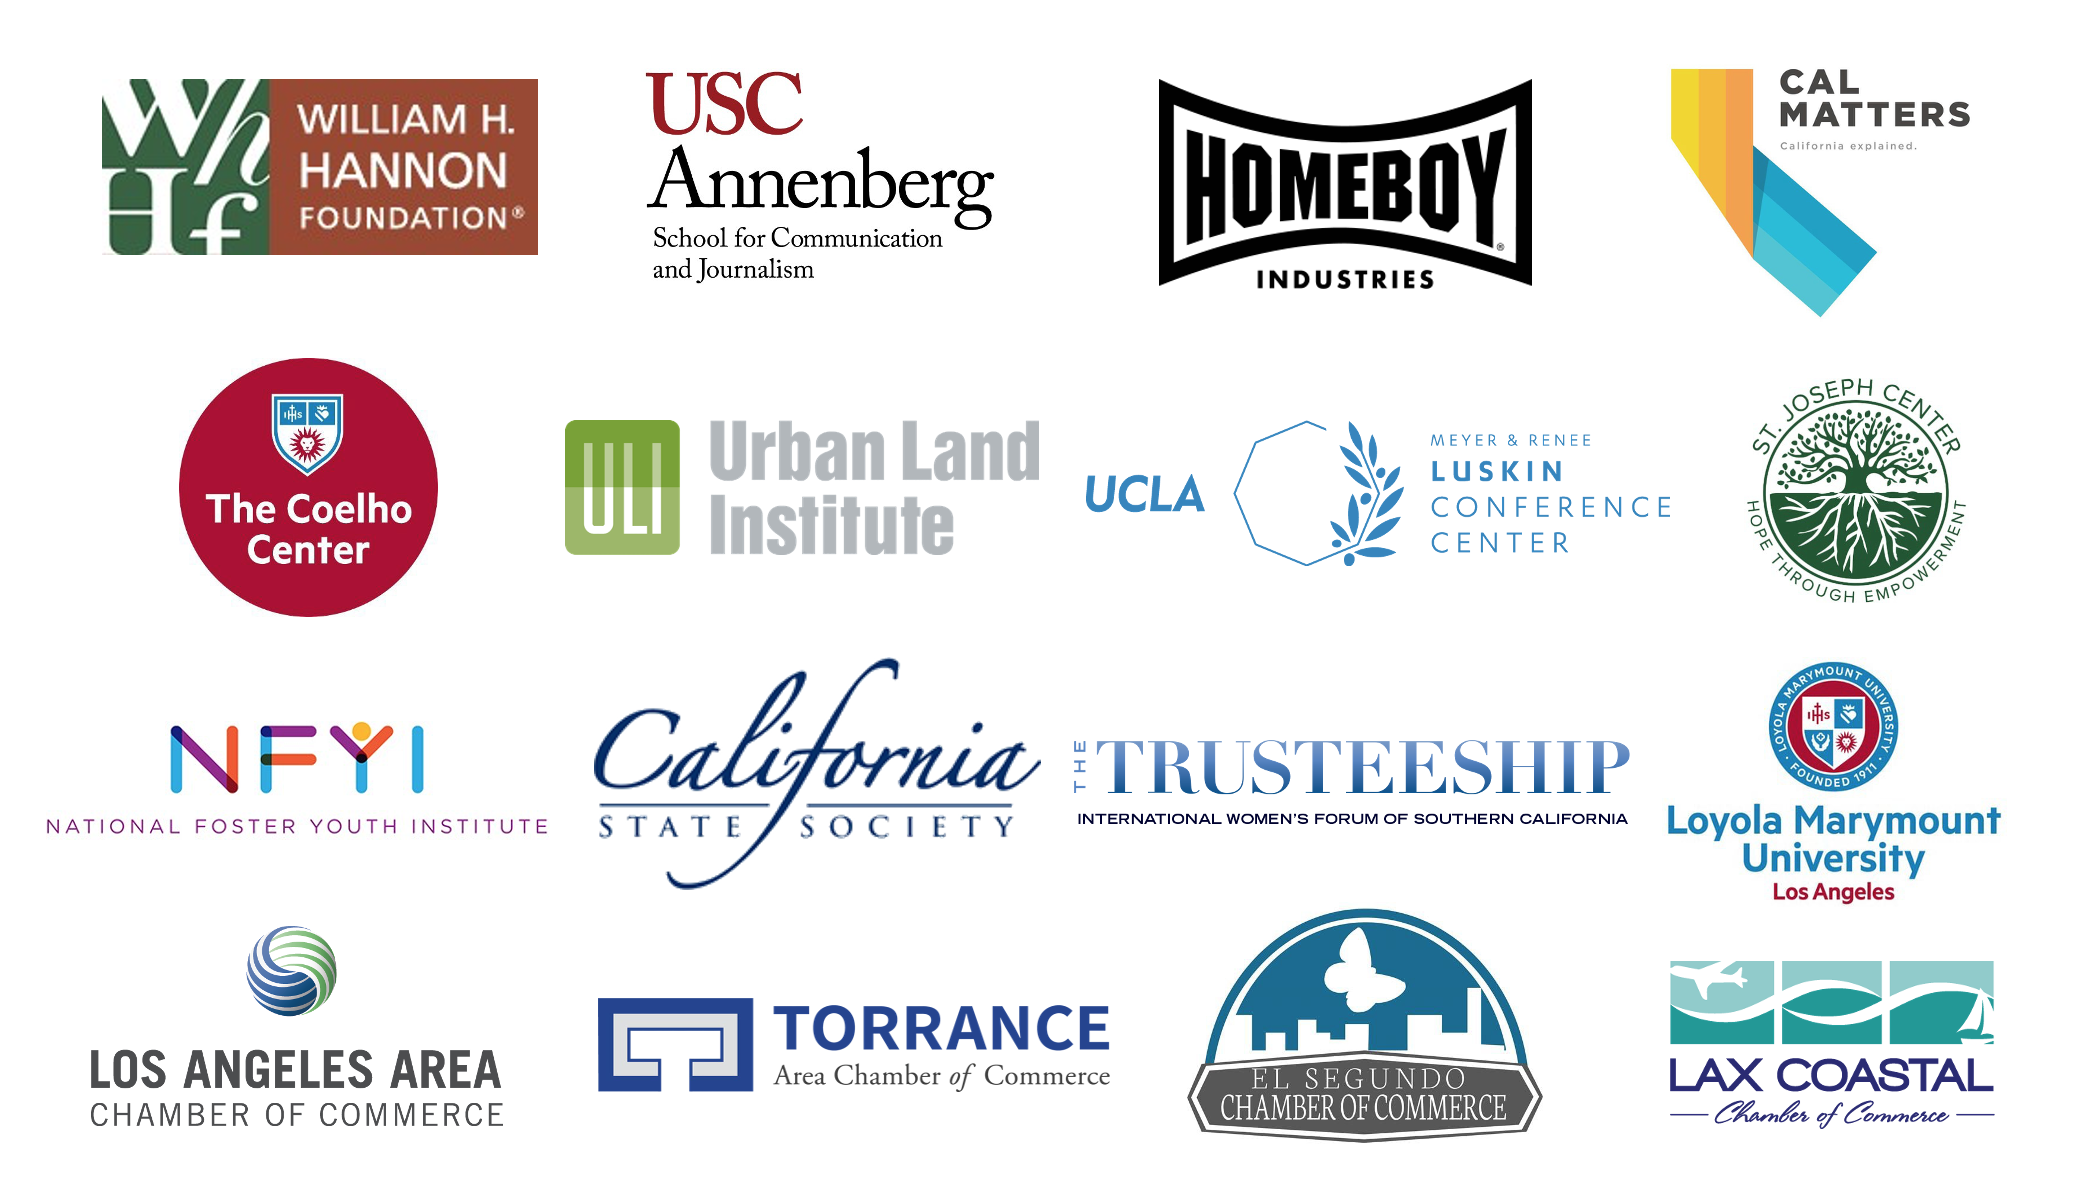 William H. Hannon Foundation, USC Annenburg, Homebody Industries, Cal Matters, The Coelho Center, Urban Land Institute, UCLA Meyer and Renee Luskin Conference Center, St. Joseph Center, NFYI, California State Society, The Trusteeship, Loyola Marymount University Los Angeles, Los Angeles Area Chamber of Commerce, Torrance Area Chamber of Commerce, El Segundo Chamber of Commerse, LAX Costal Chamber of Commerce